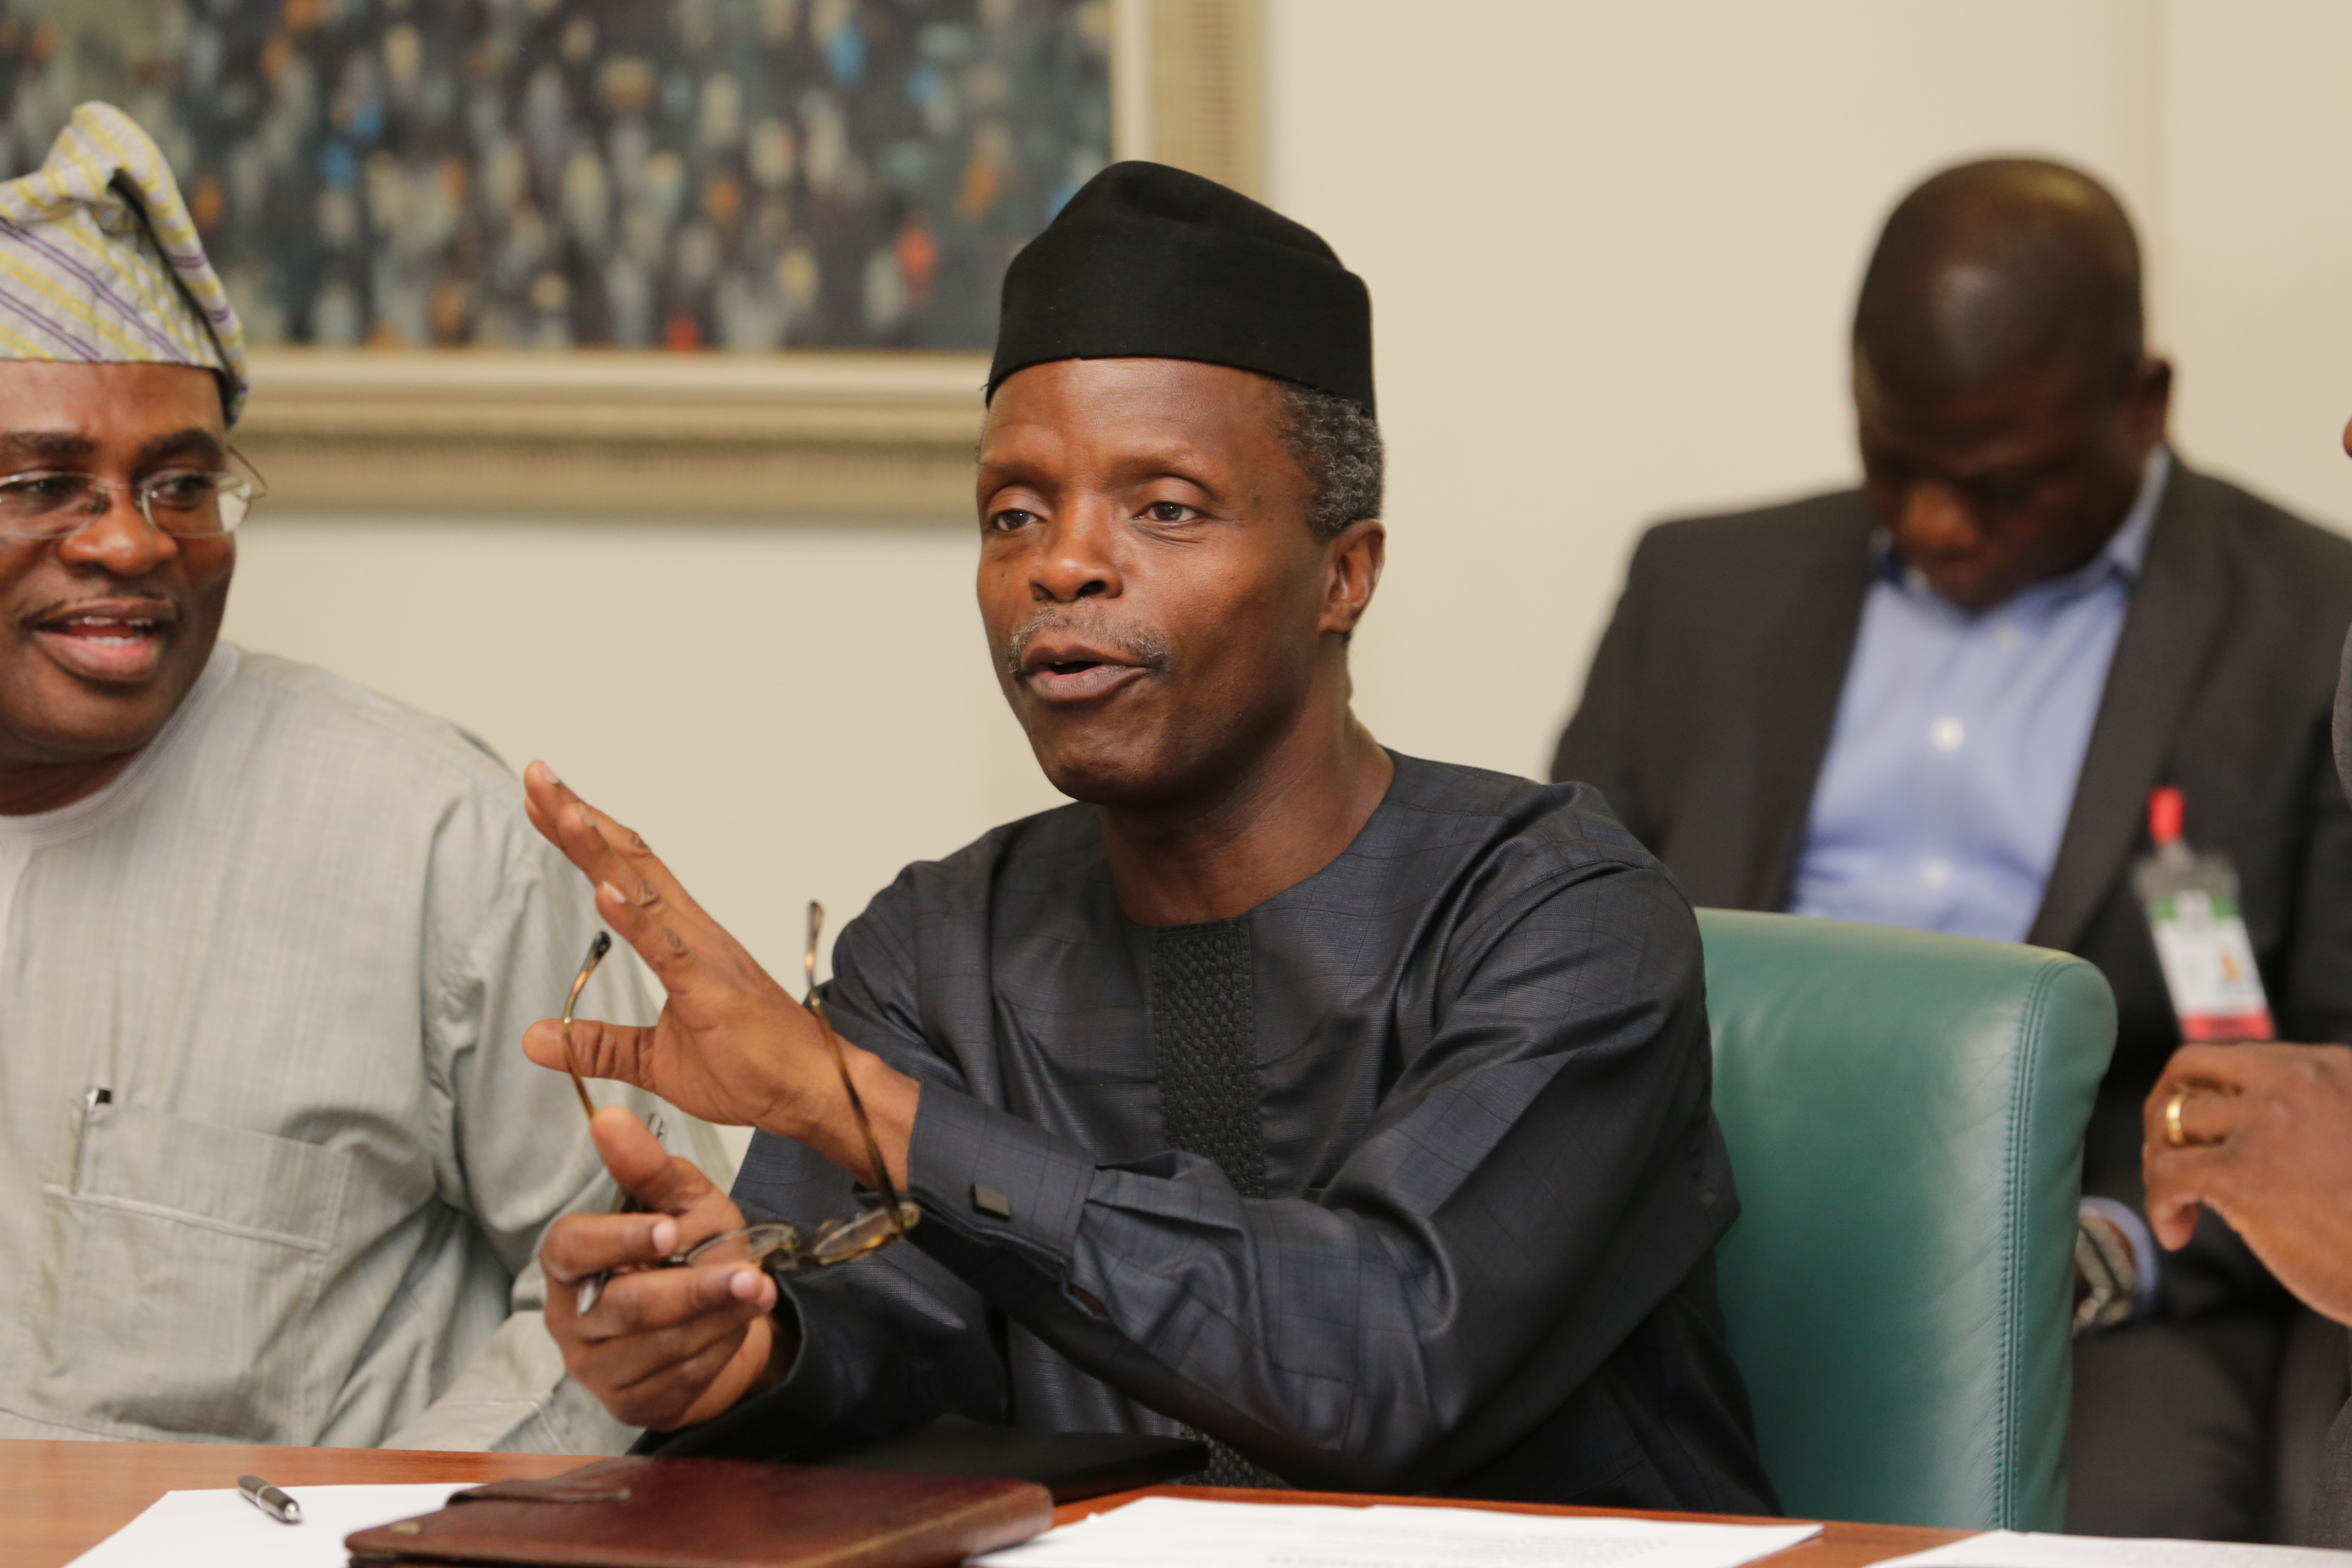 VP Osinbajo Meets With Health Sector Strategy Committee For Roundtable Discussion On 13/05/2015